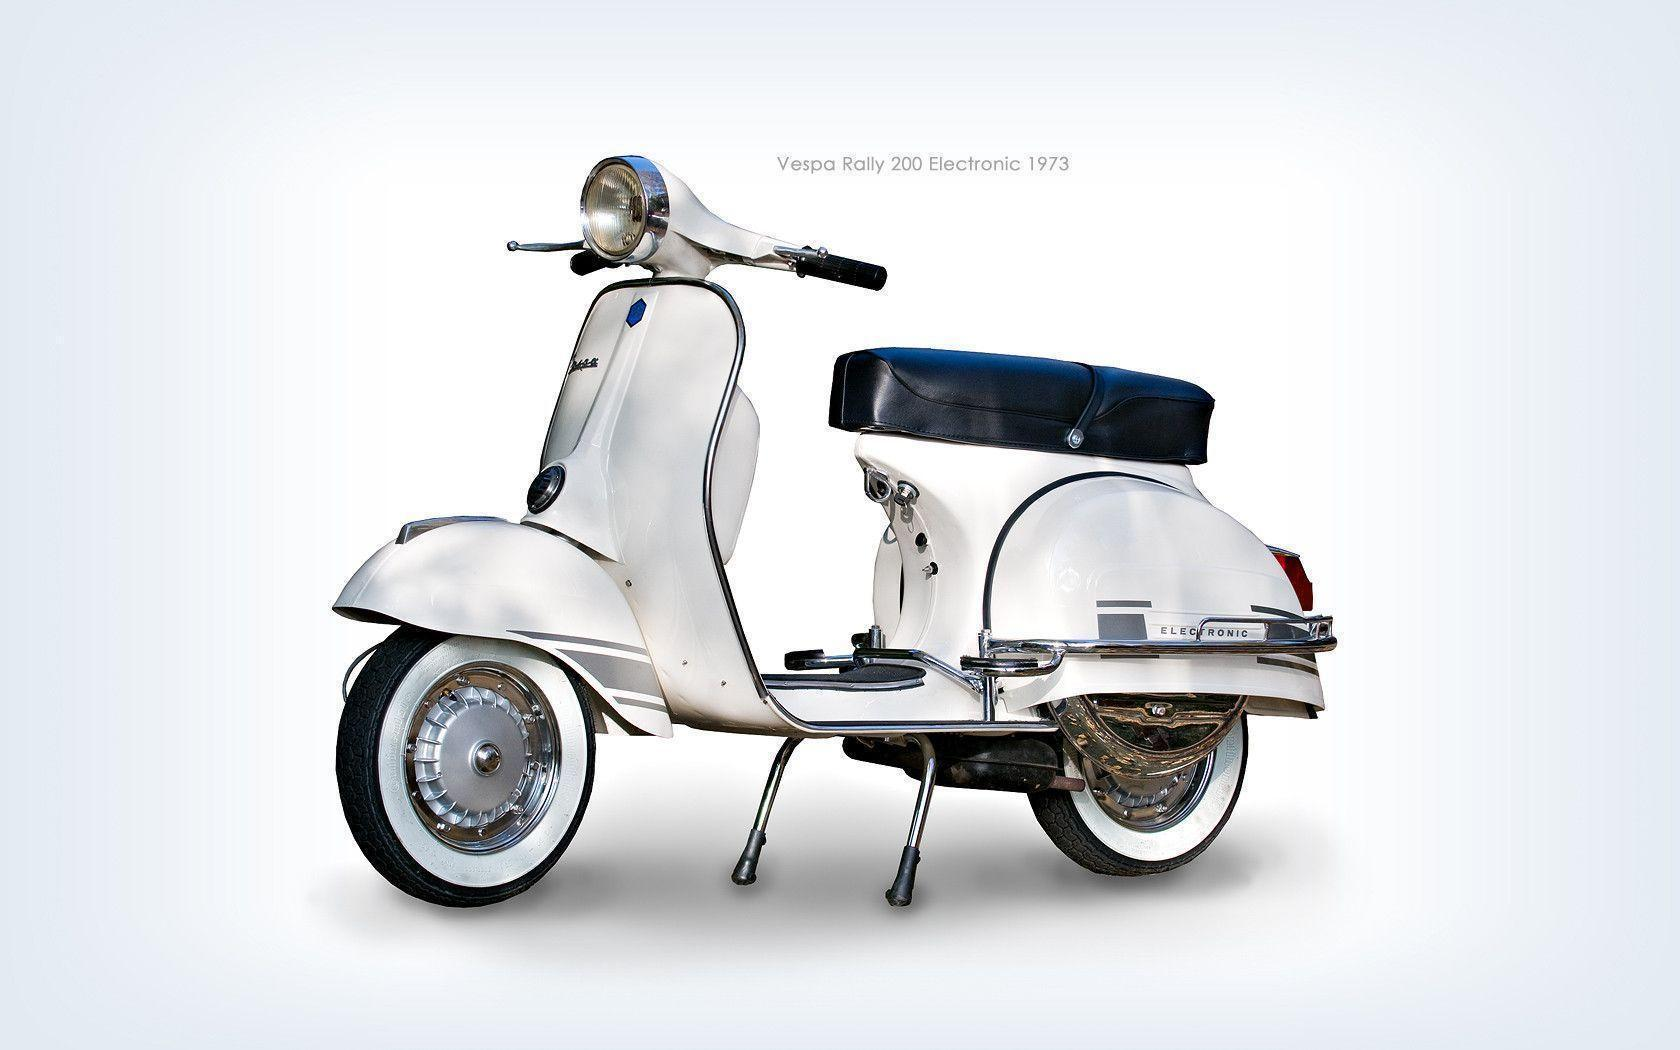 Vintage Vespa Wallpaper - Viewing Gallery